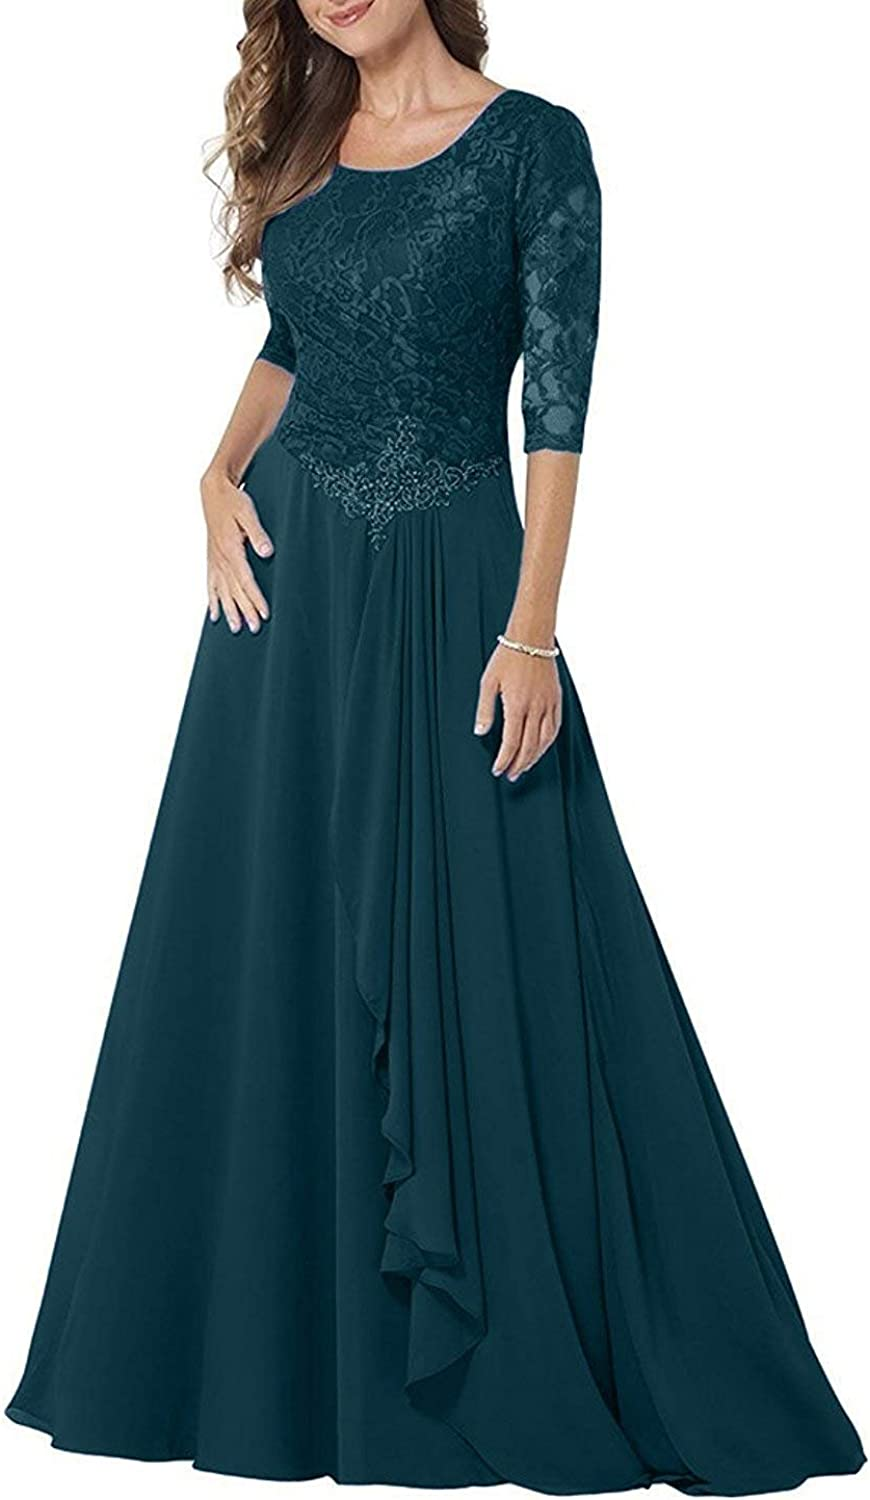 PearlBridal Modest Lace Half Sleeves Mother of Bride Dresses Chiffon Ruffle Long Formal Evening Gown